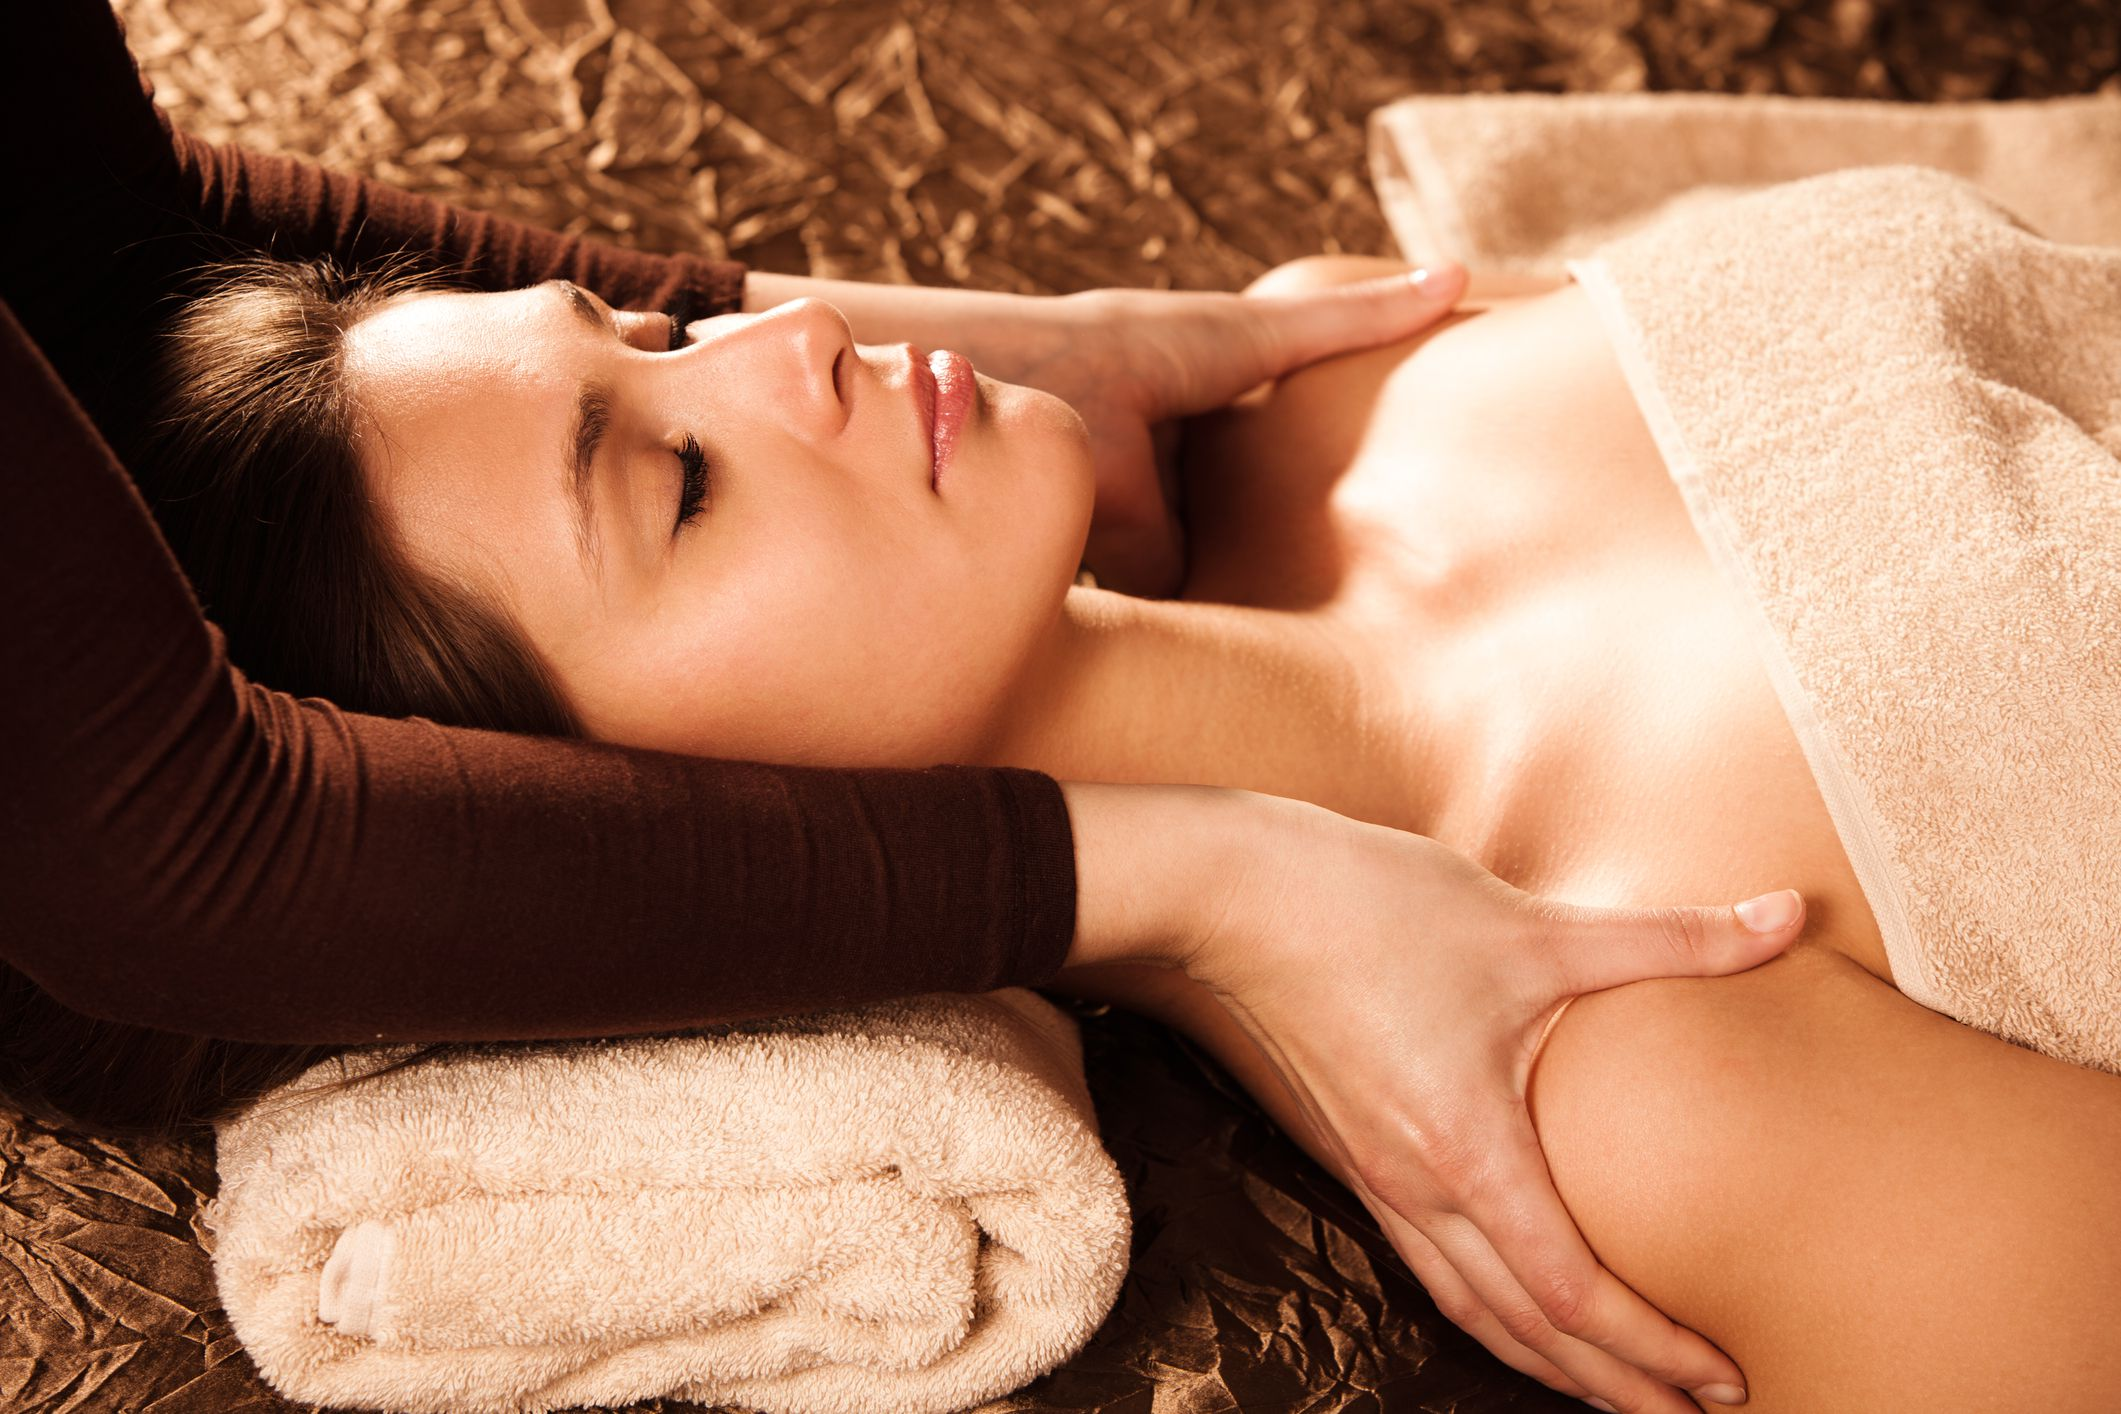 Angel Spa - Own your massage spa franchise opportunity - Stanton - CA 90680